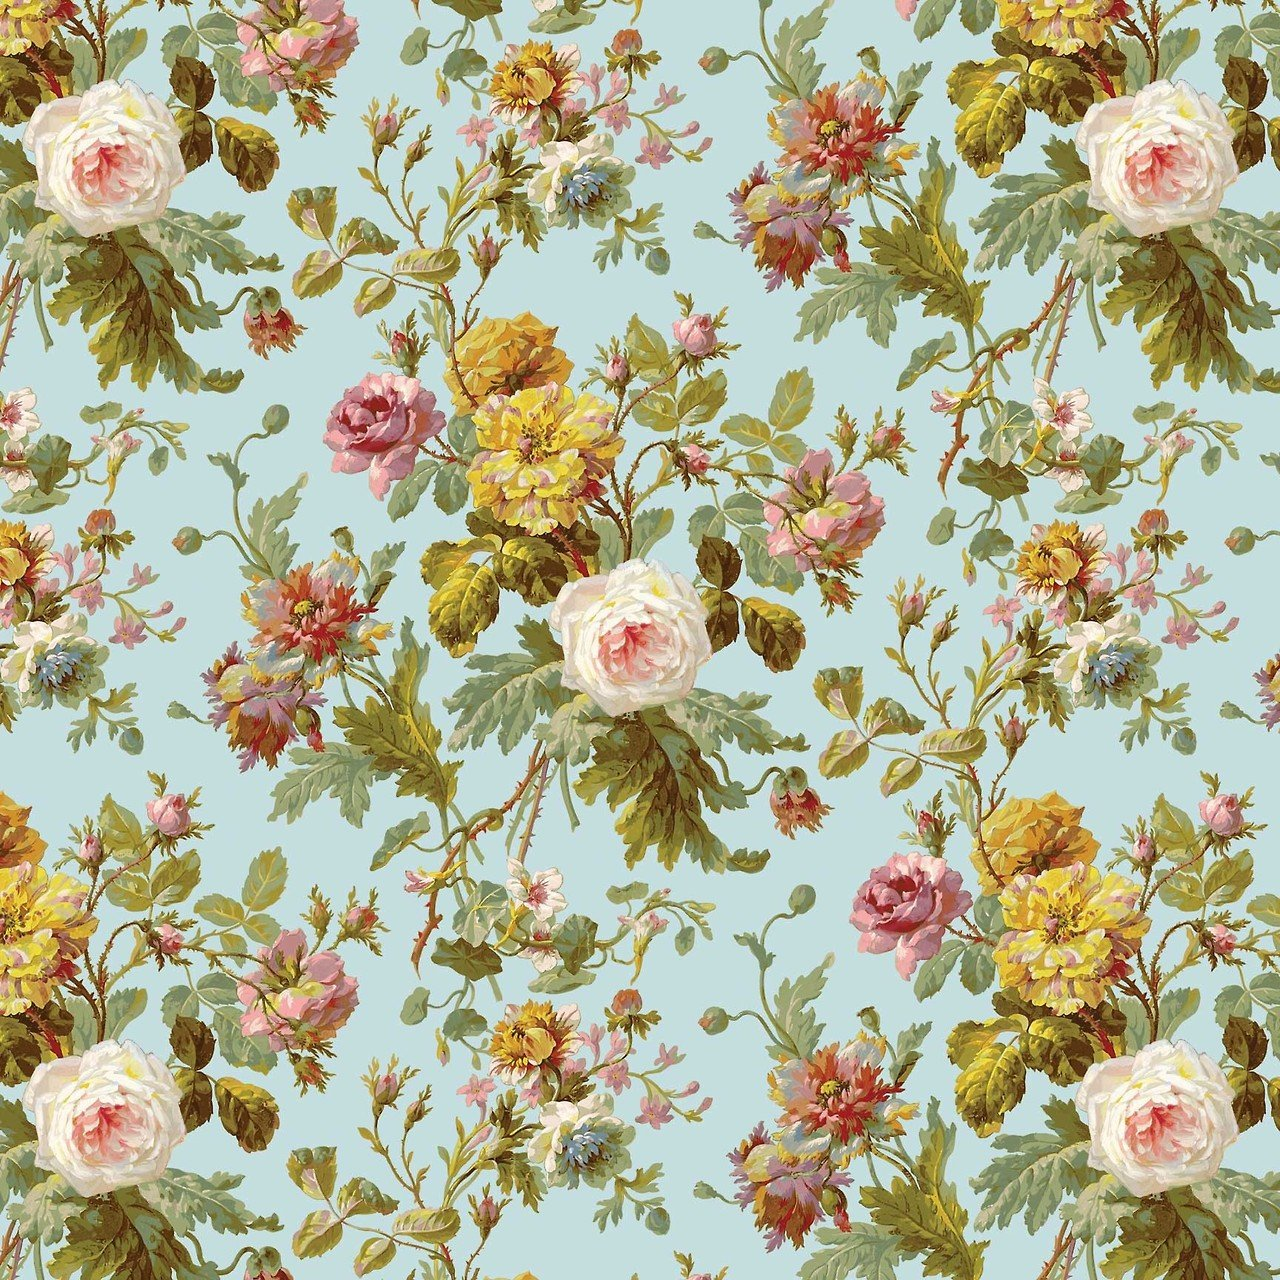 Vintage Floral Wallpaper Pattern Cool HD Wallpapers 1280x1280